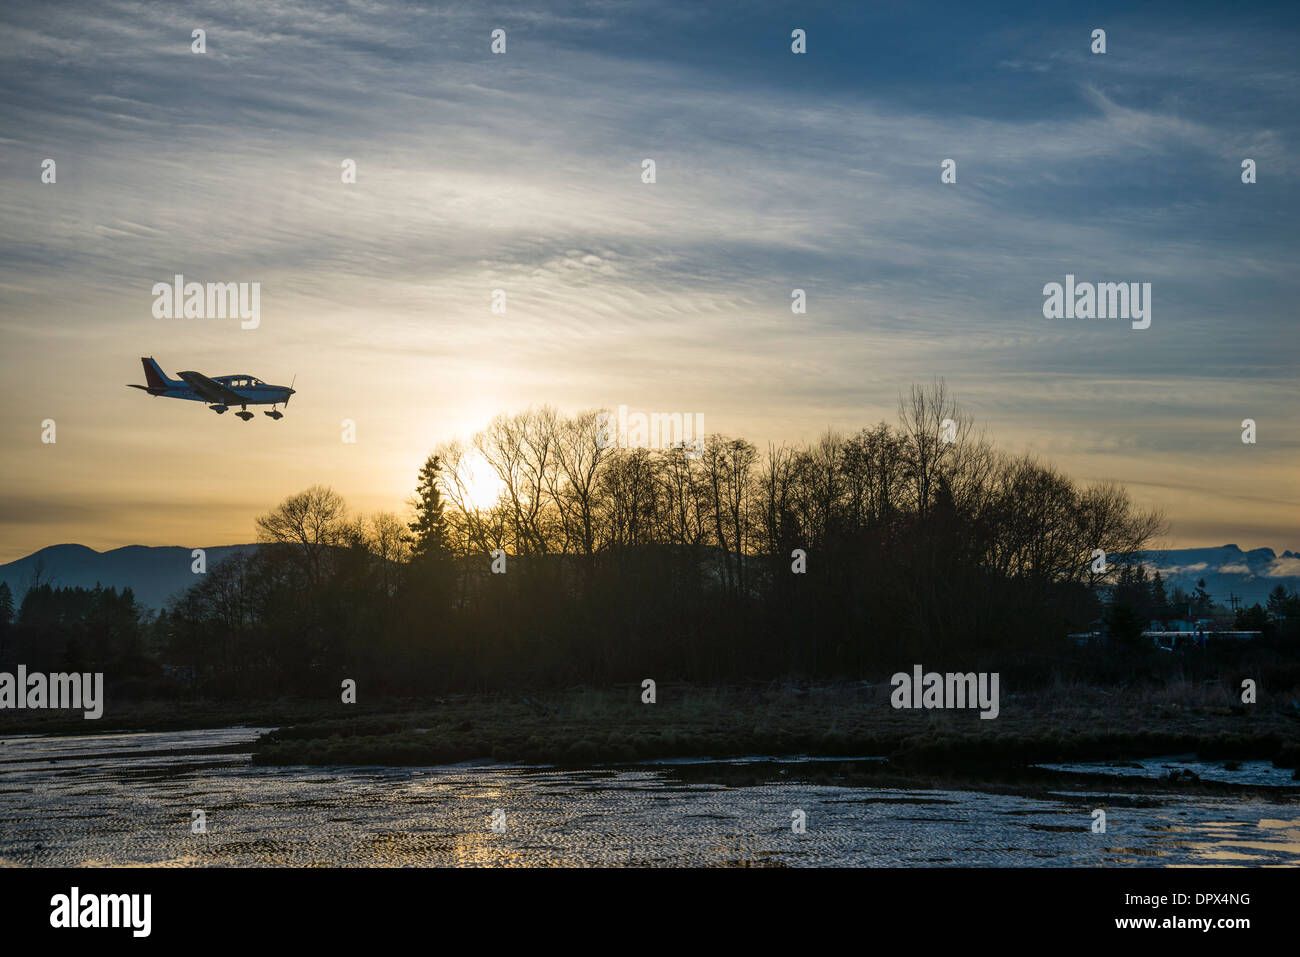 Small plane landing, Courtenay, British Columbia, Canada - Stock Image